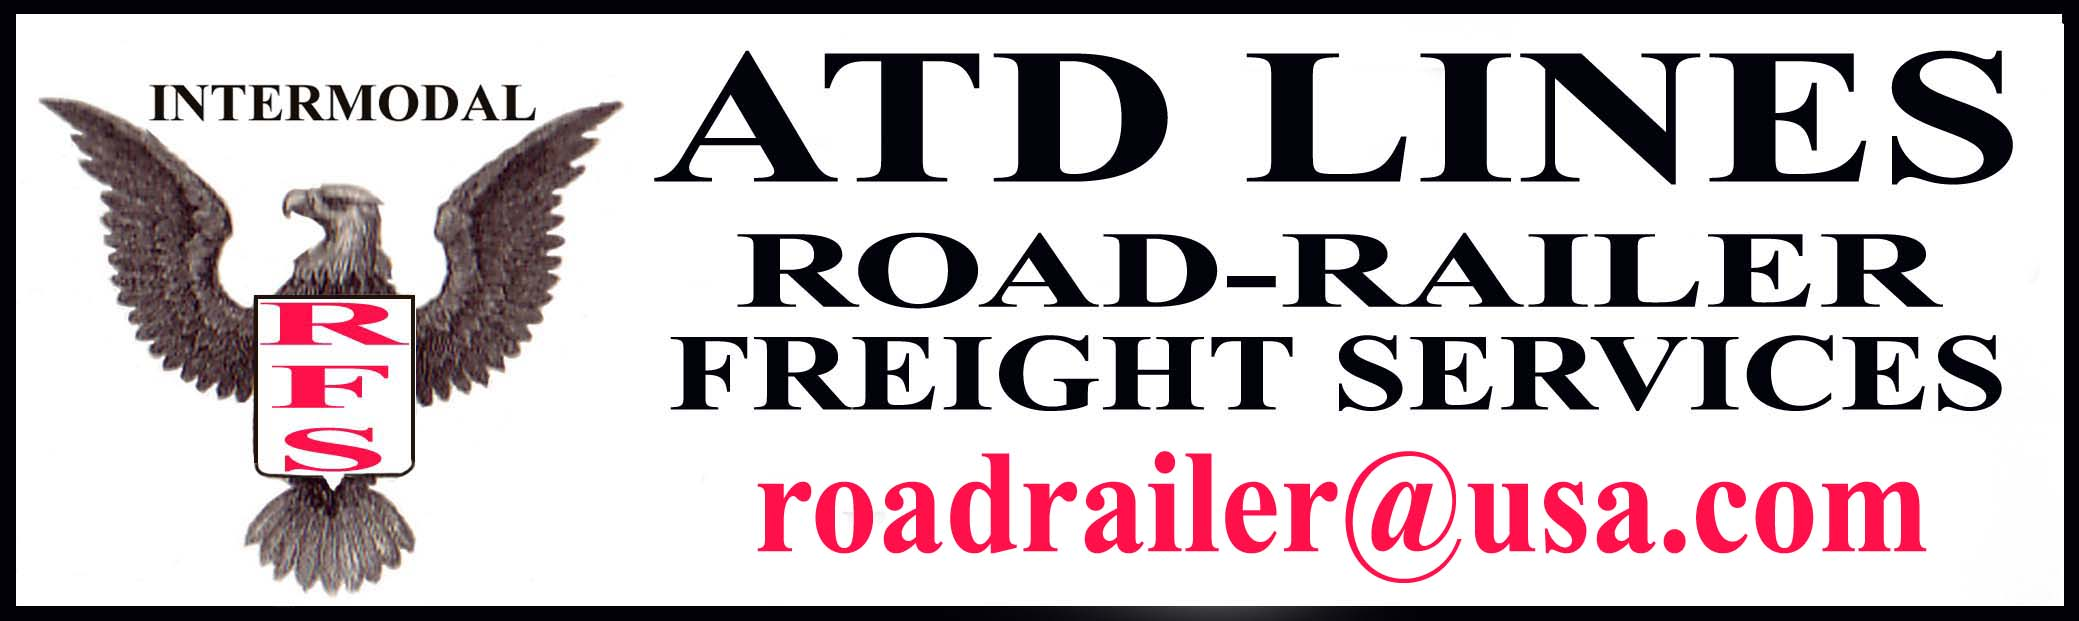 ATD LINES ROAD-RAILER FREIGHT SERVICES/RFS- Freight